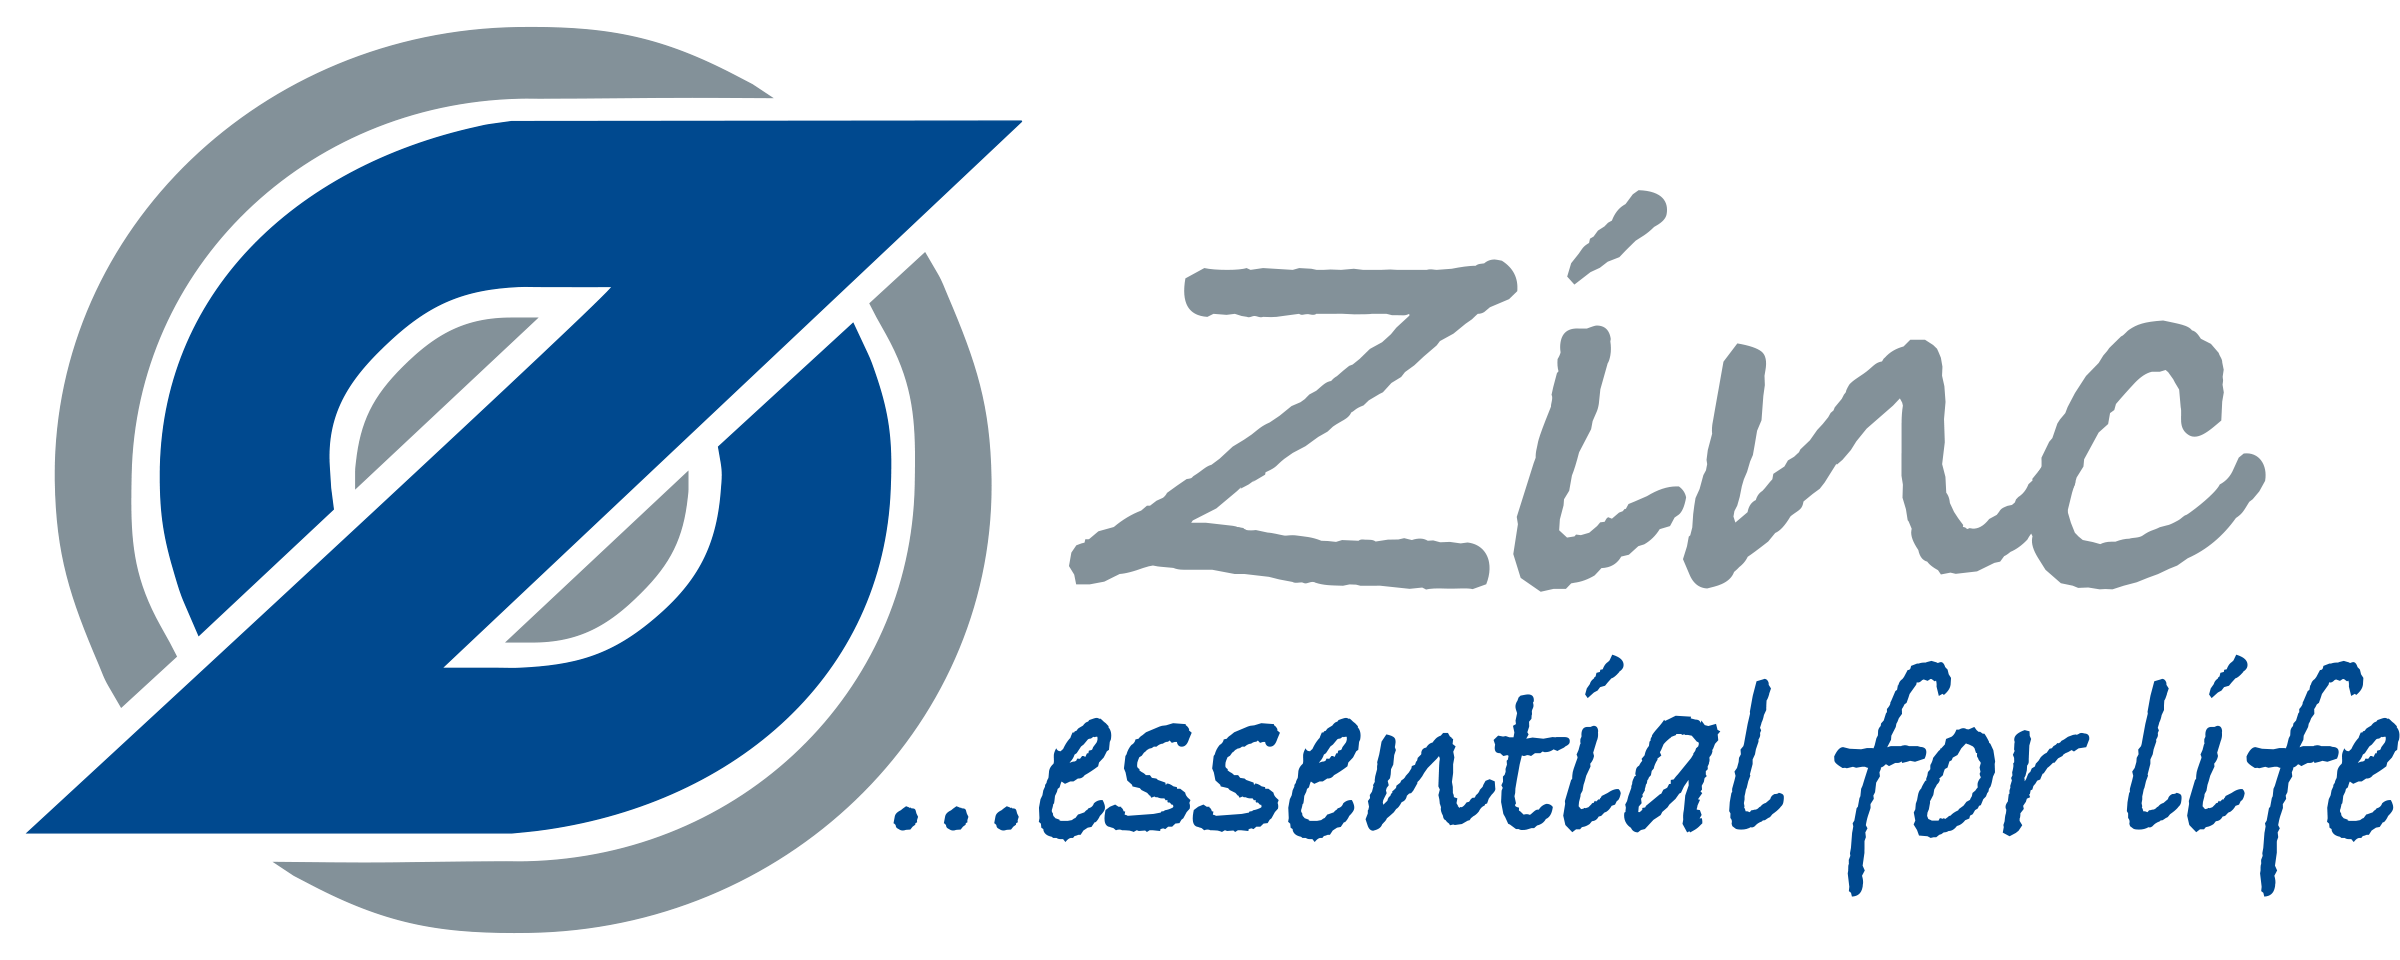 IZA-E - International Zinc Association - Europe